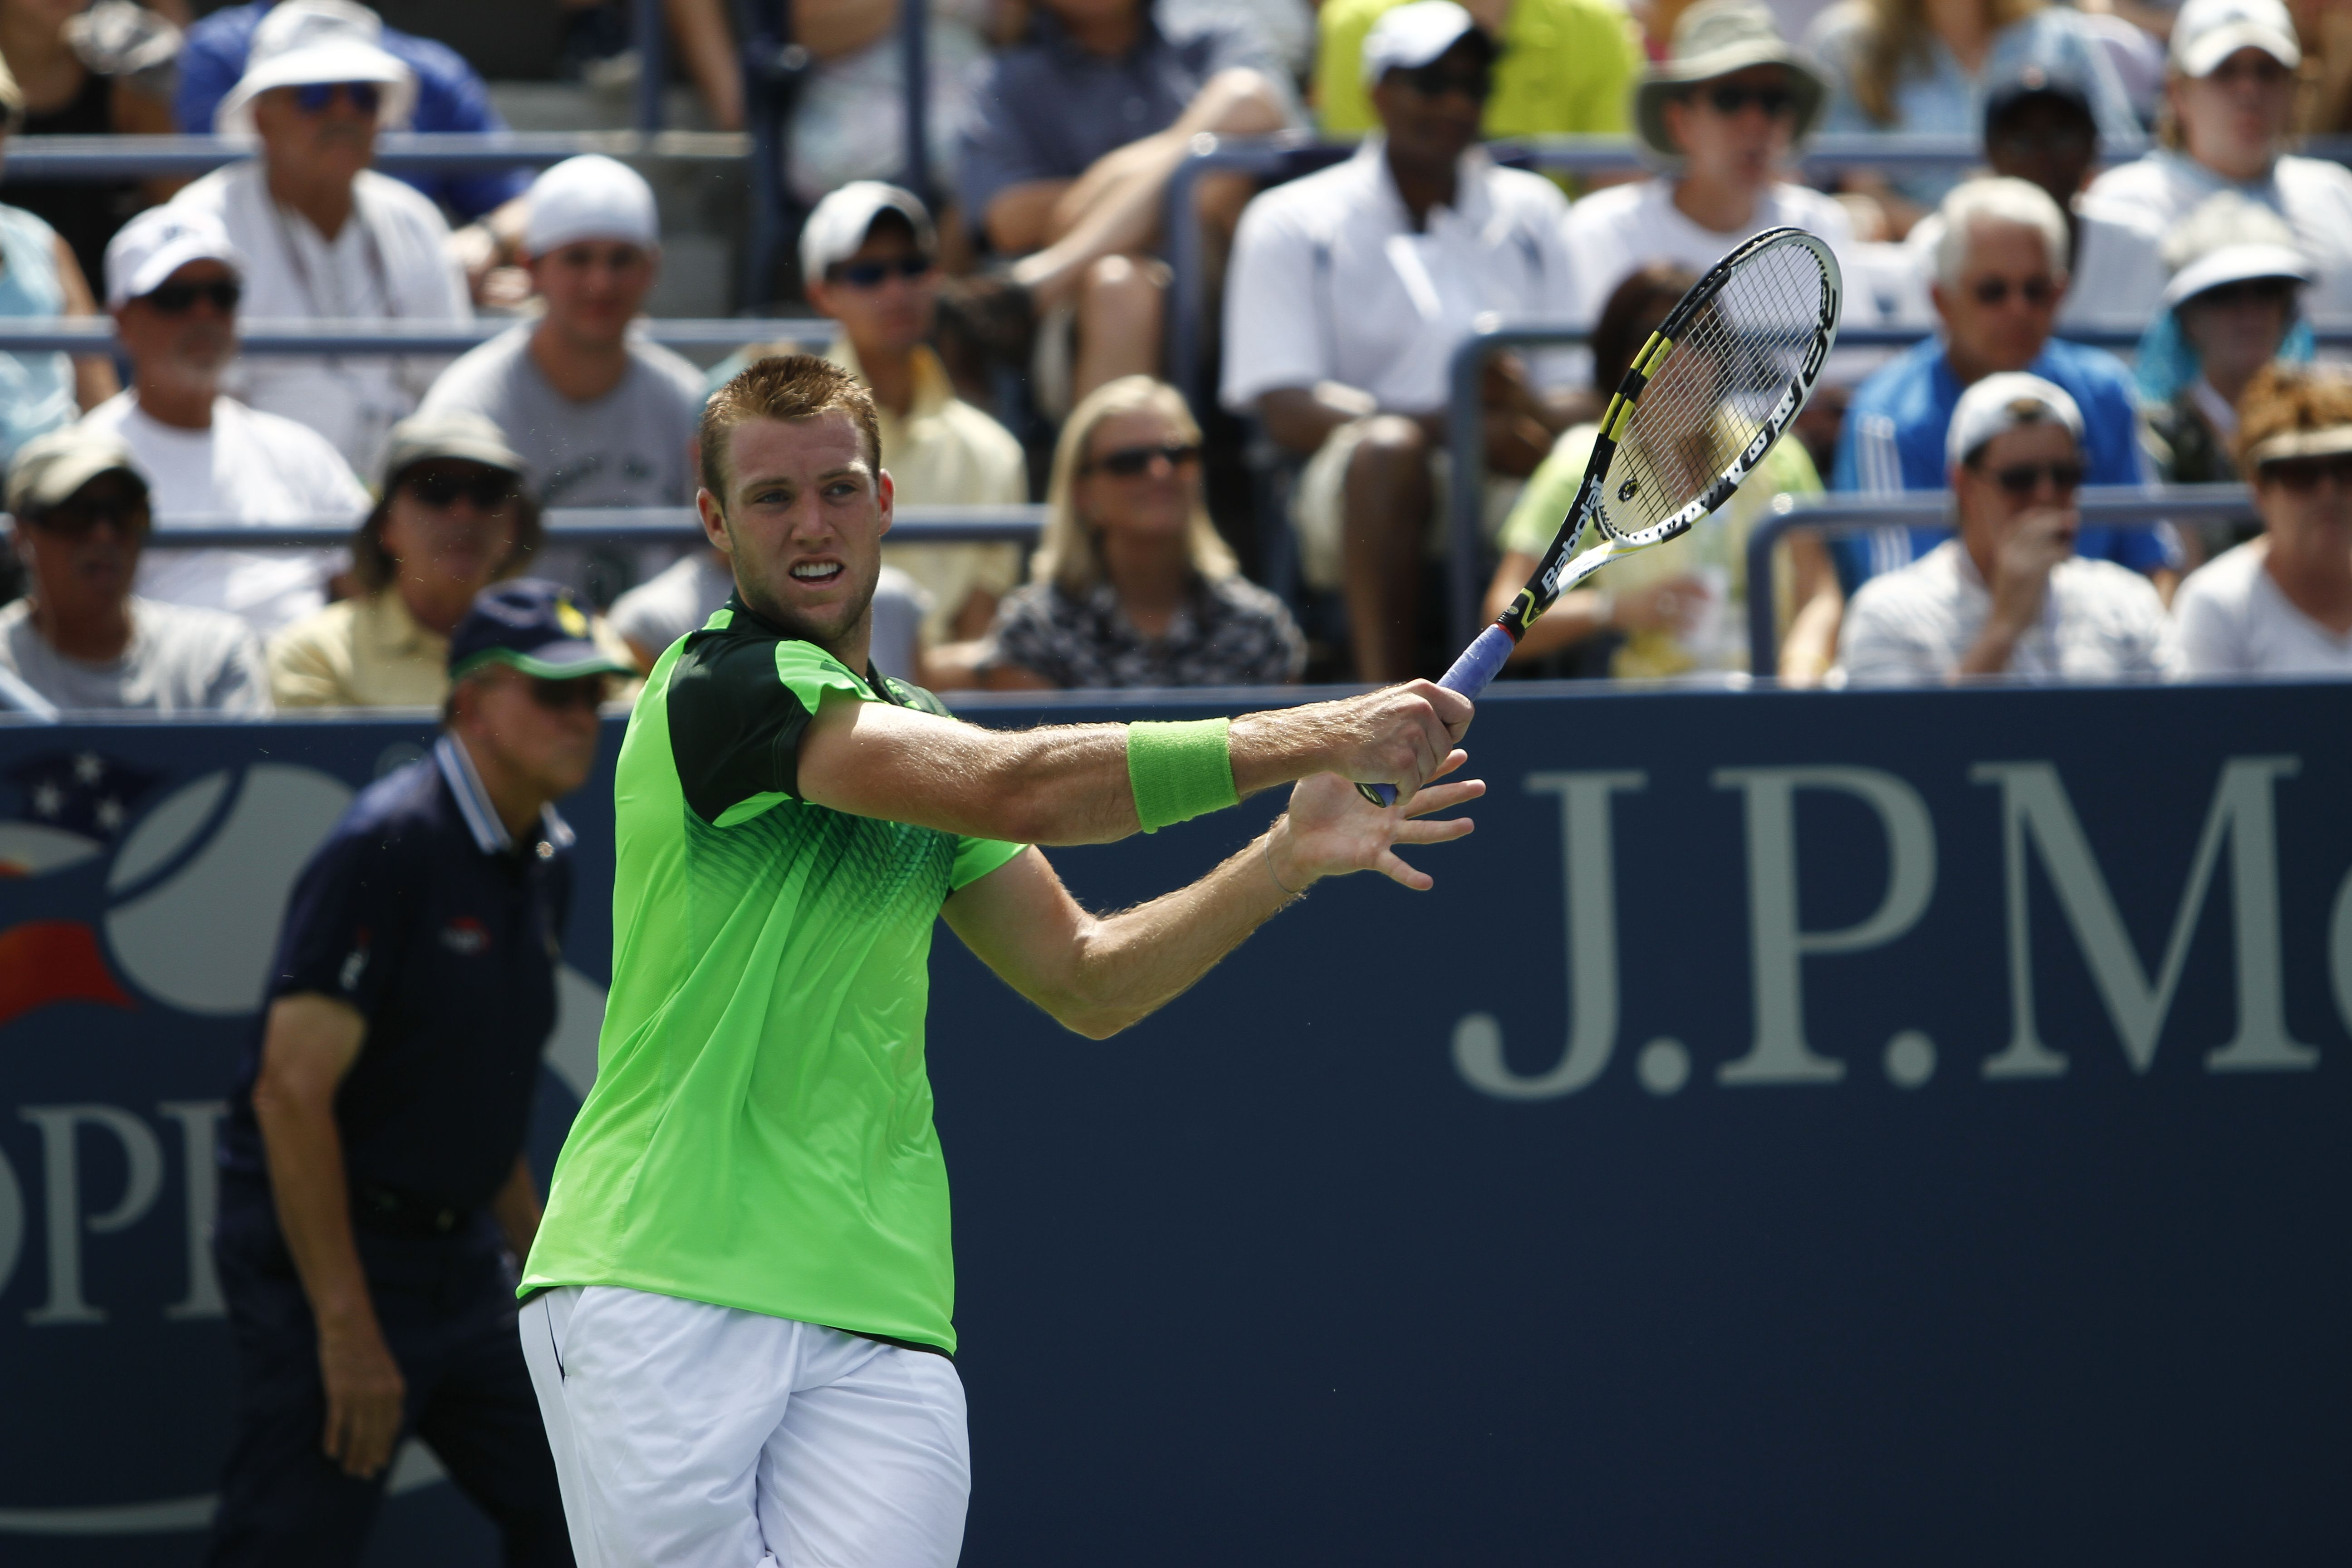 Jack Sock is trying to keep American hopes alive in the Men's Singles draw!